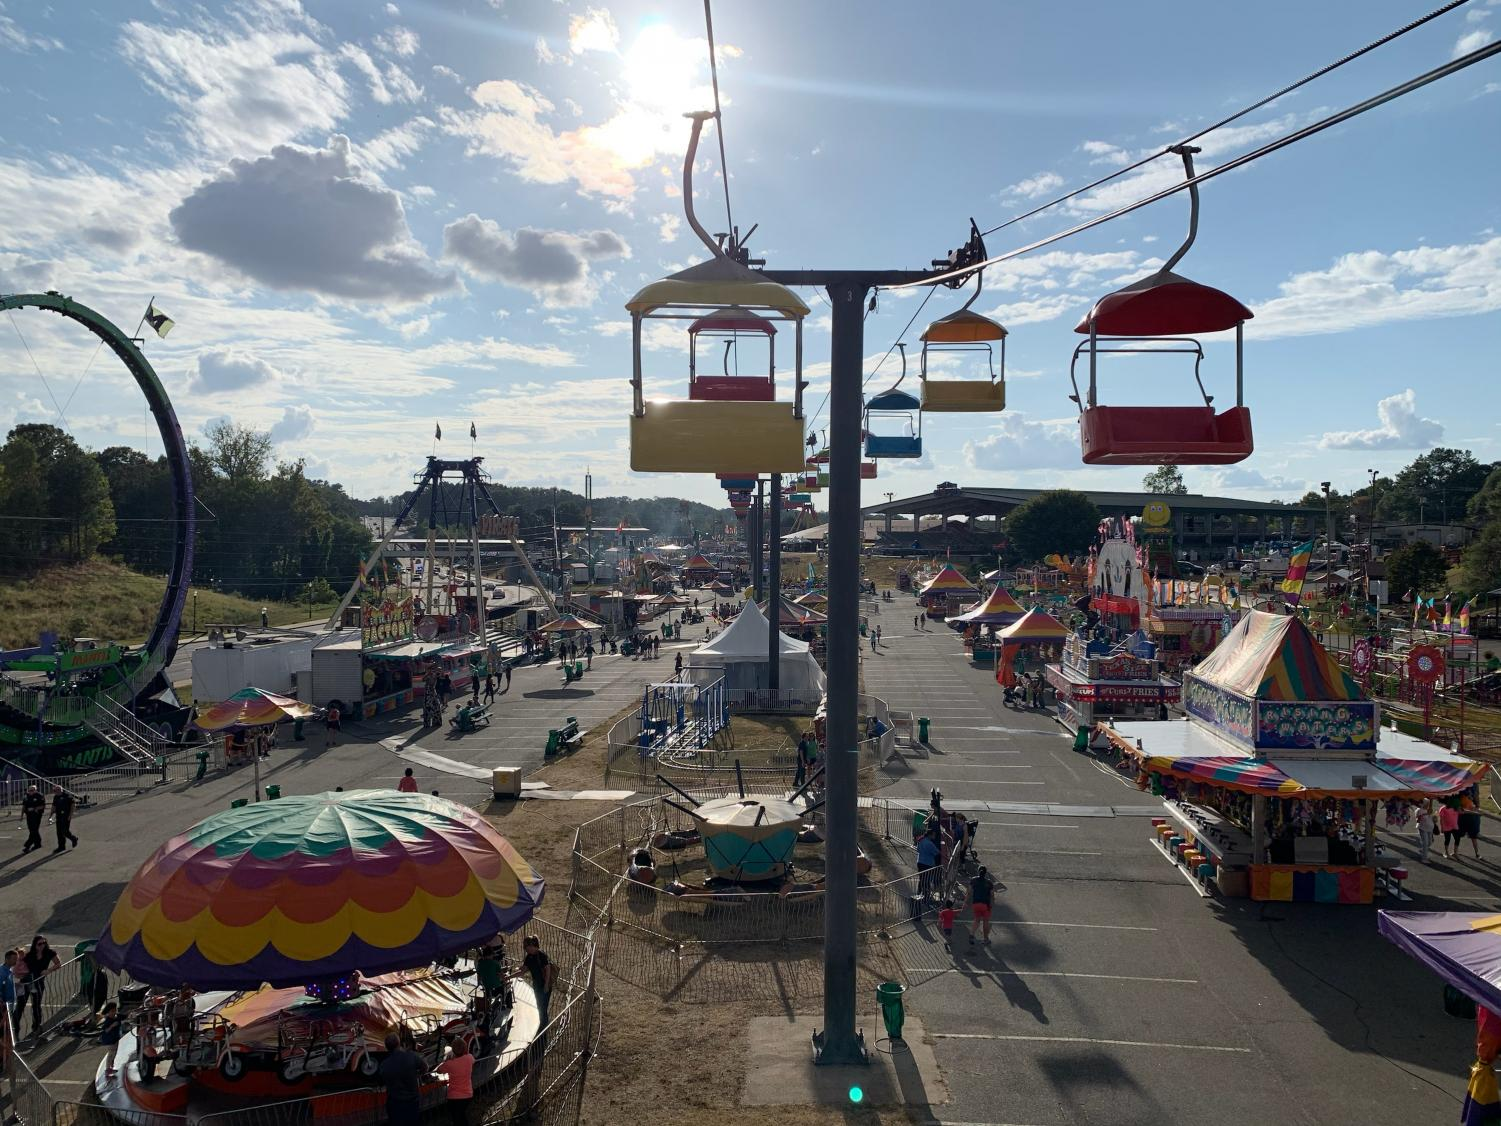 An overview of the fair featuring many rides such as the mantis, sky buckets, and priate ship. Photo by: Anes Ribic